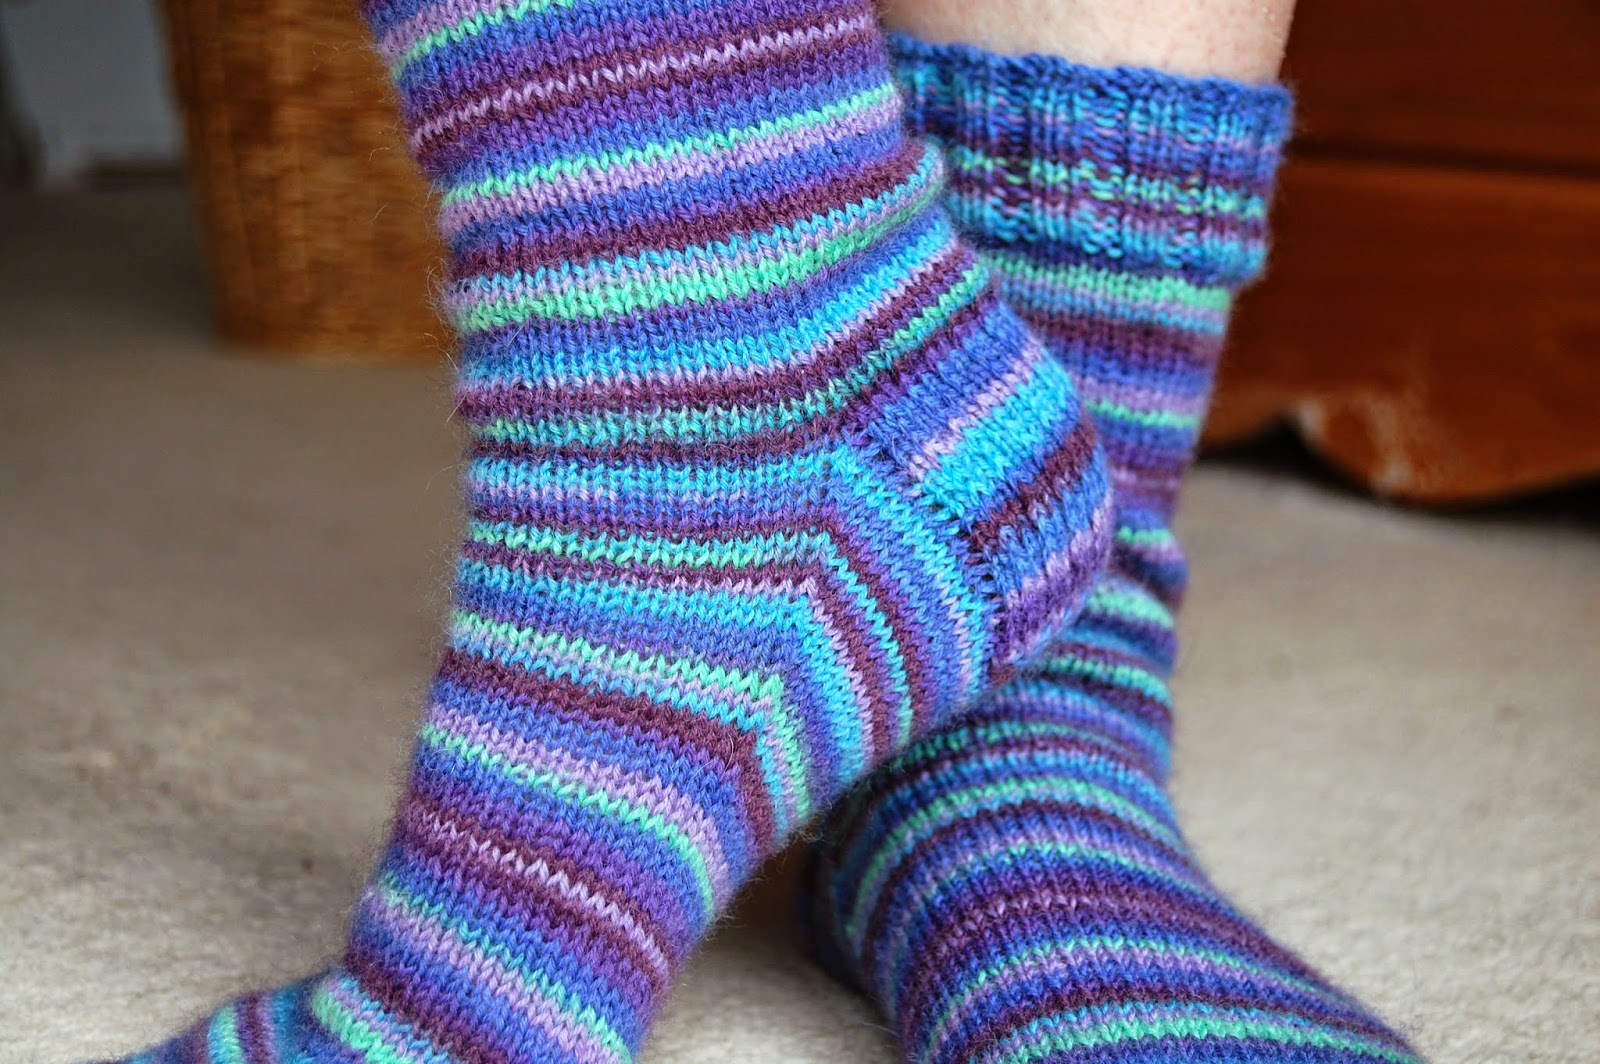 Sock Knitting Pattern For Beginners : Winwick Mum: Basic 4ply sock pattern and tutorial - easy beginner sock knitting!